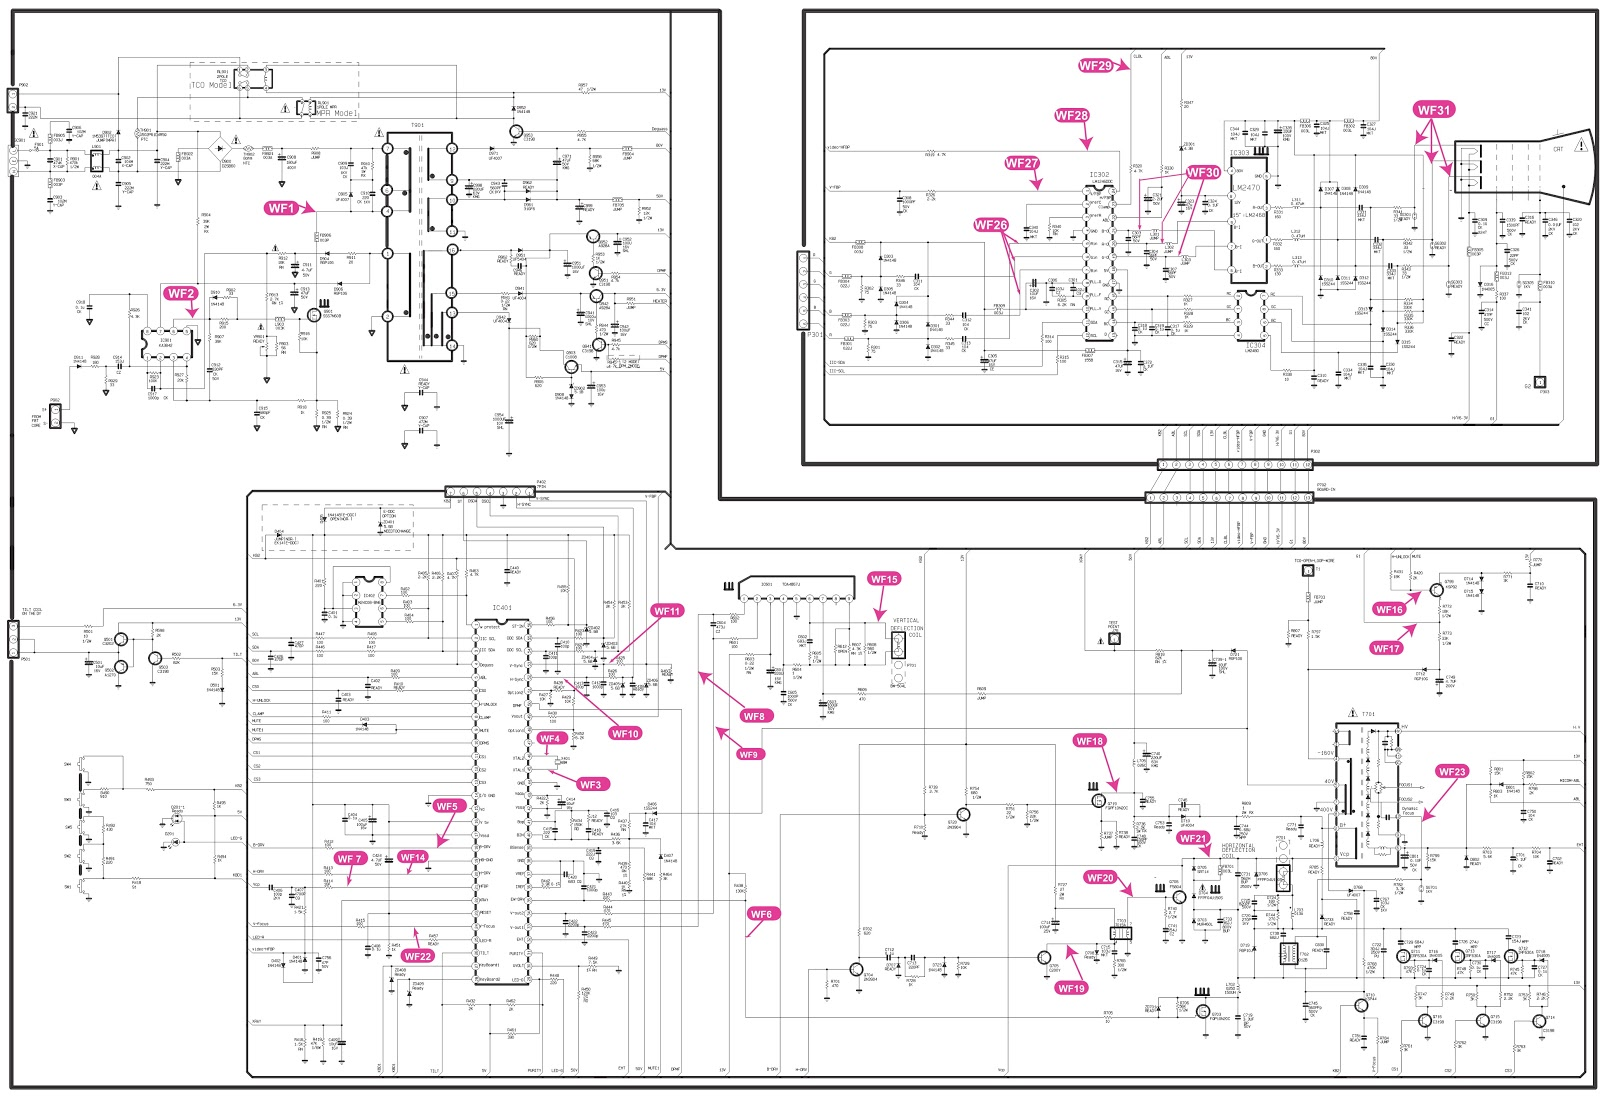 working of crt monitor with diagram how to make an er for database lg flatron c17lc  17 inch circuit